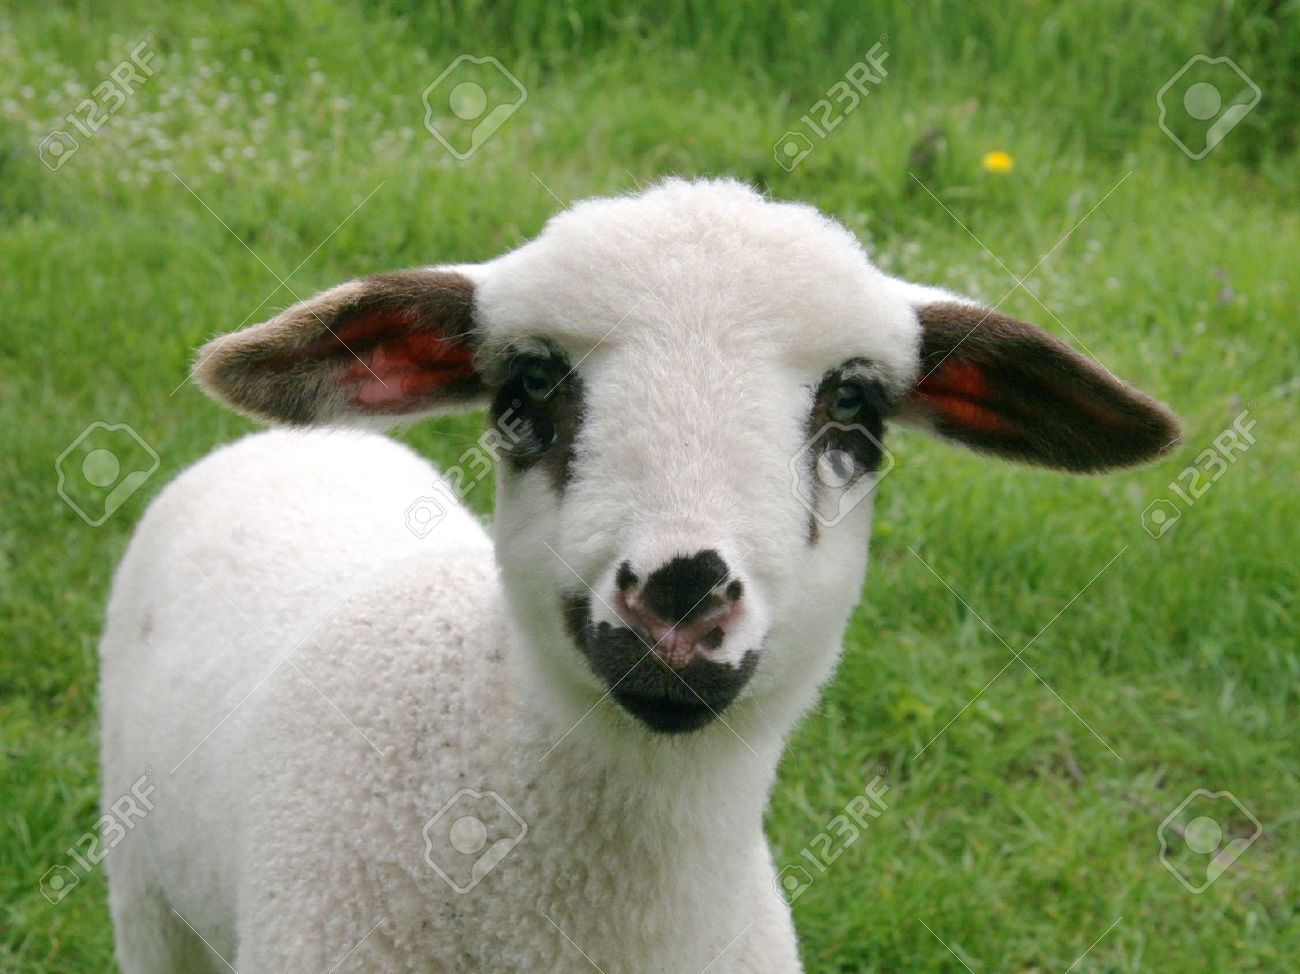 Lamb En Face Stock Photo, Picture And Royalty Free Image. Image ... for Sheep Face Black And White  156eri